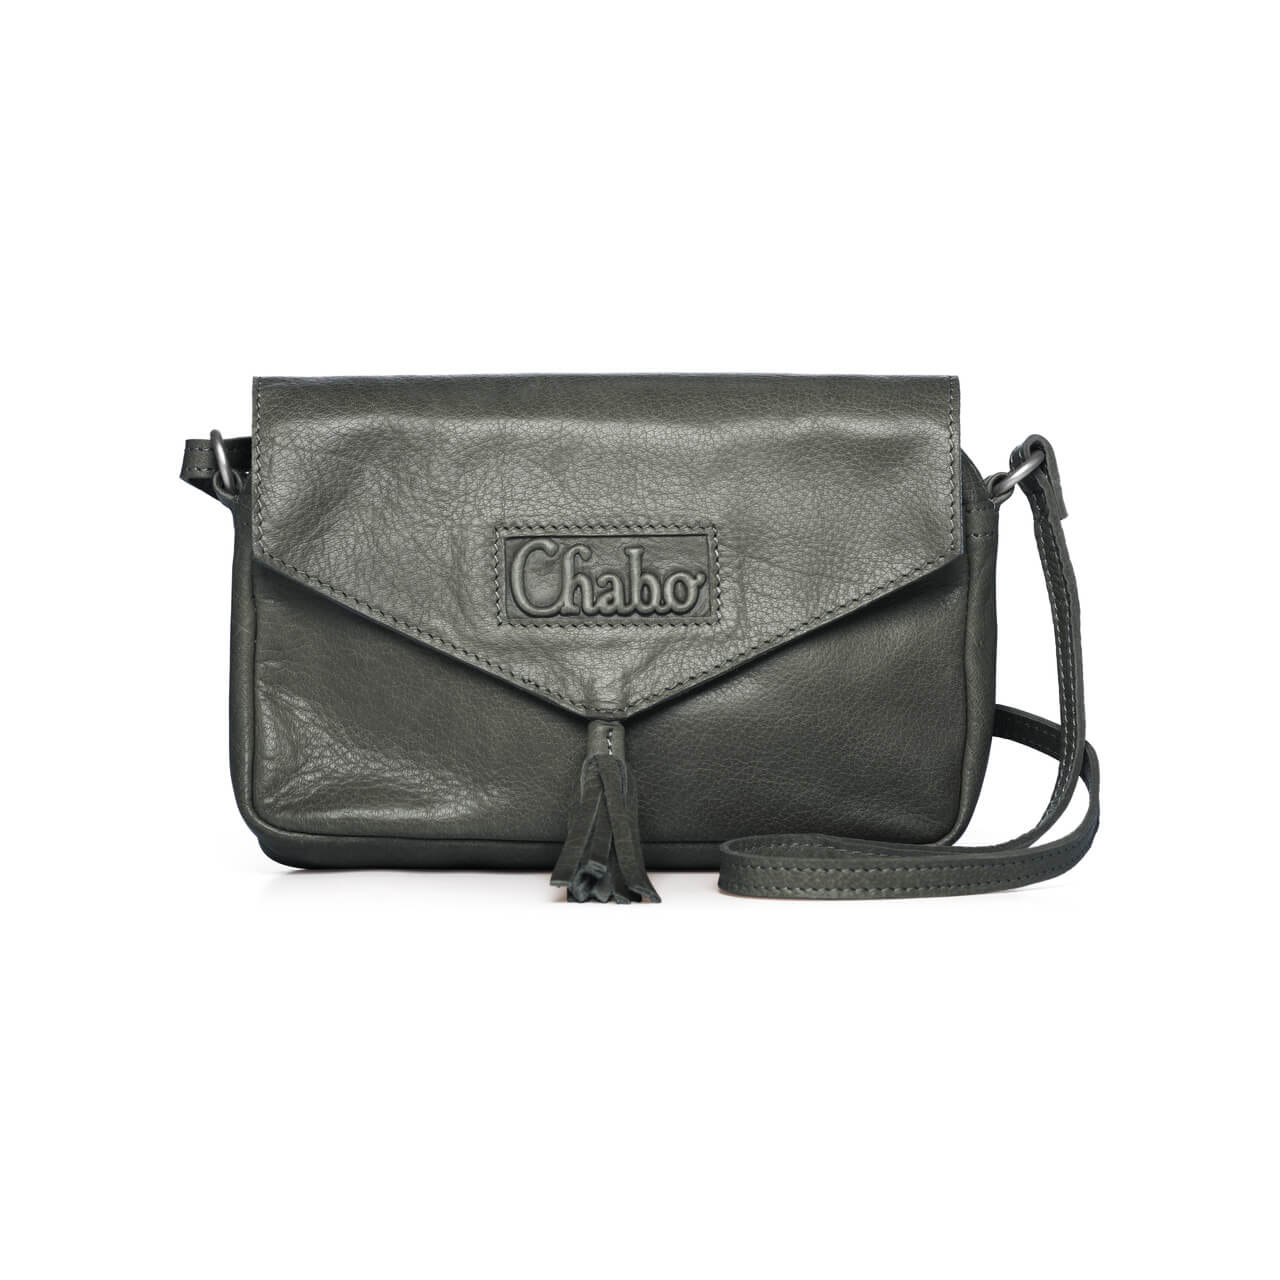 Chabo Bags - Ziggy - Green